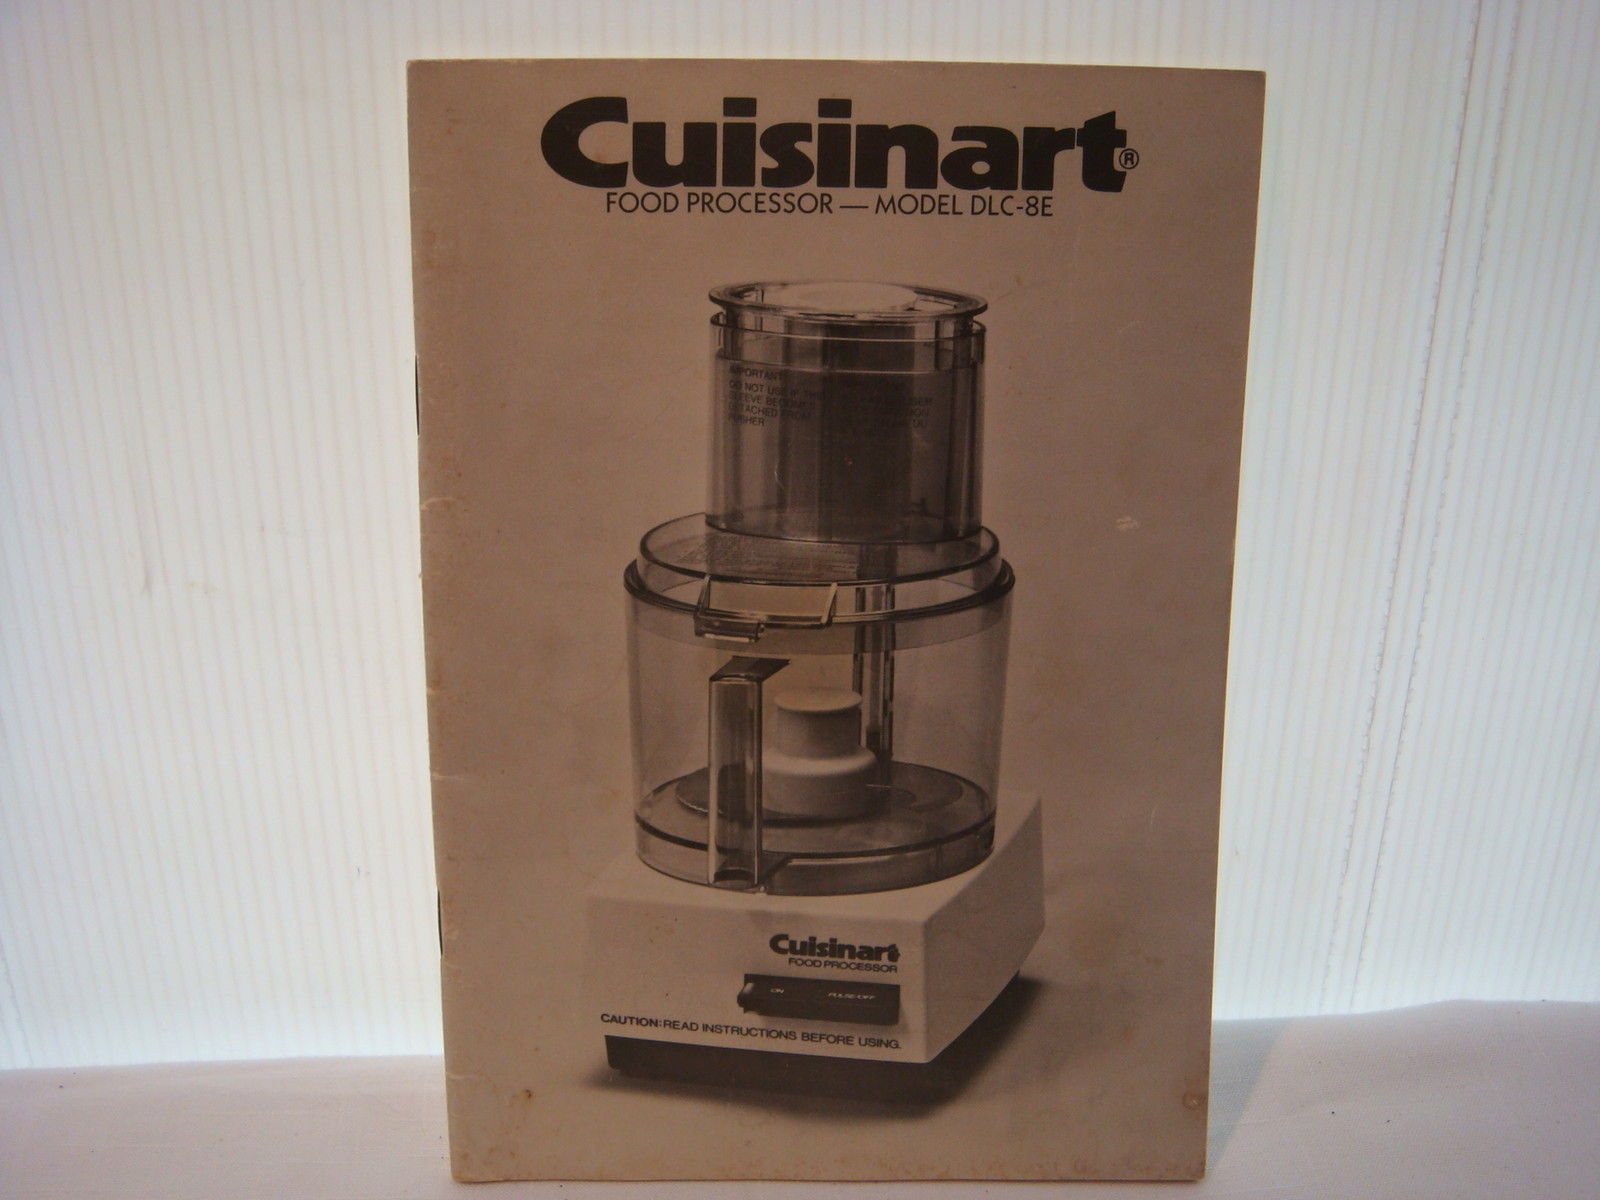 Vintage cuisinart food processor and 50 similar items vintage cuisinart food processor instructionrecipe manual only model dlc 8e forumfinder Image collections